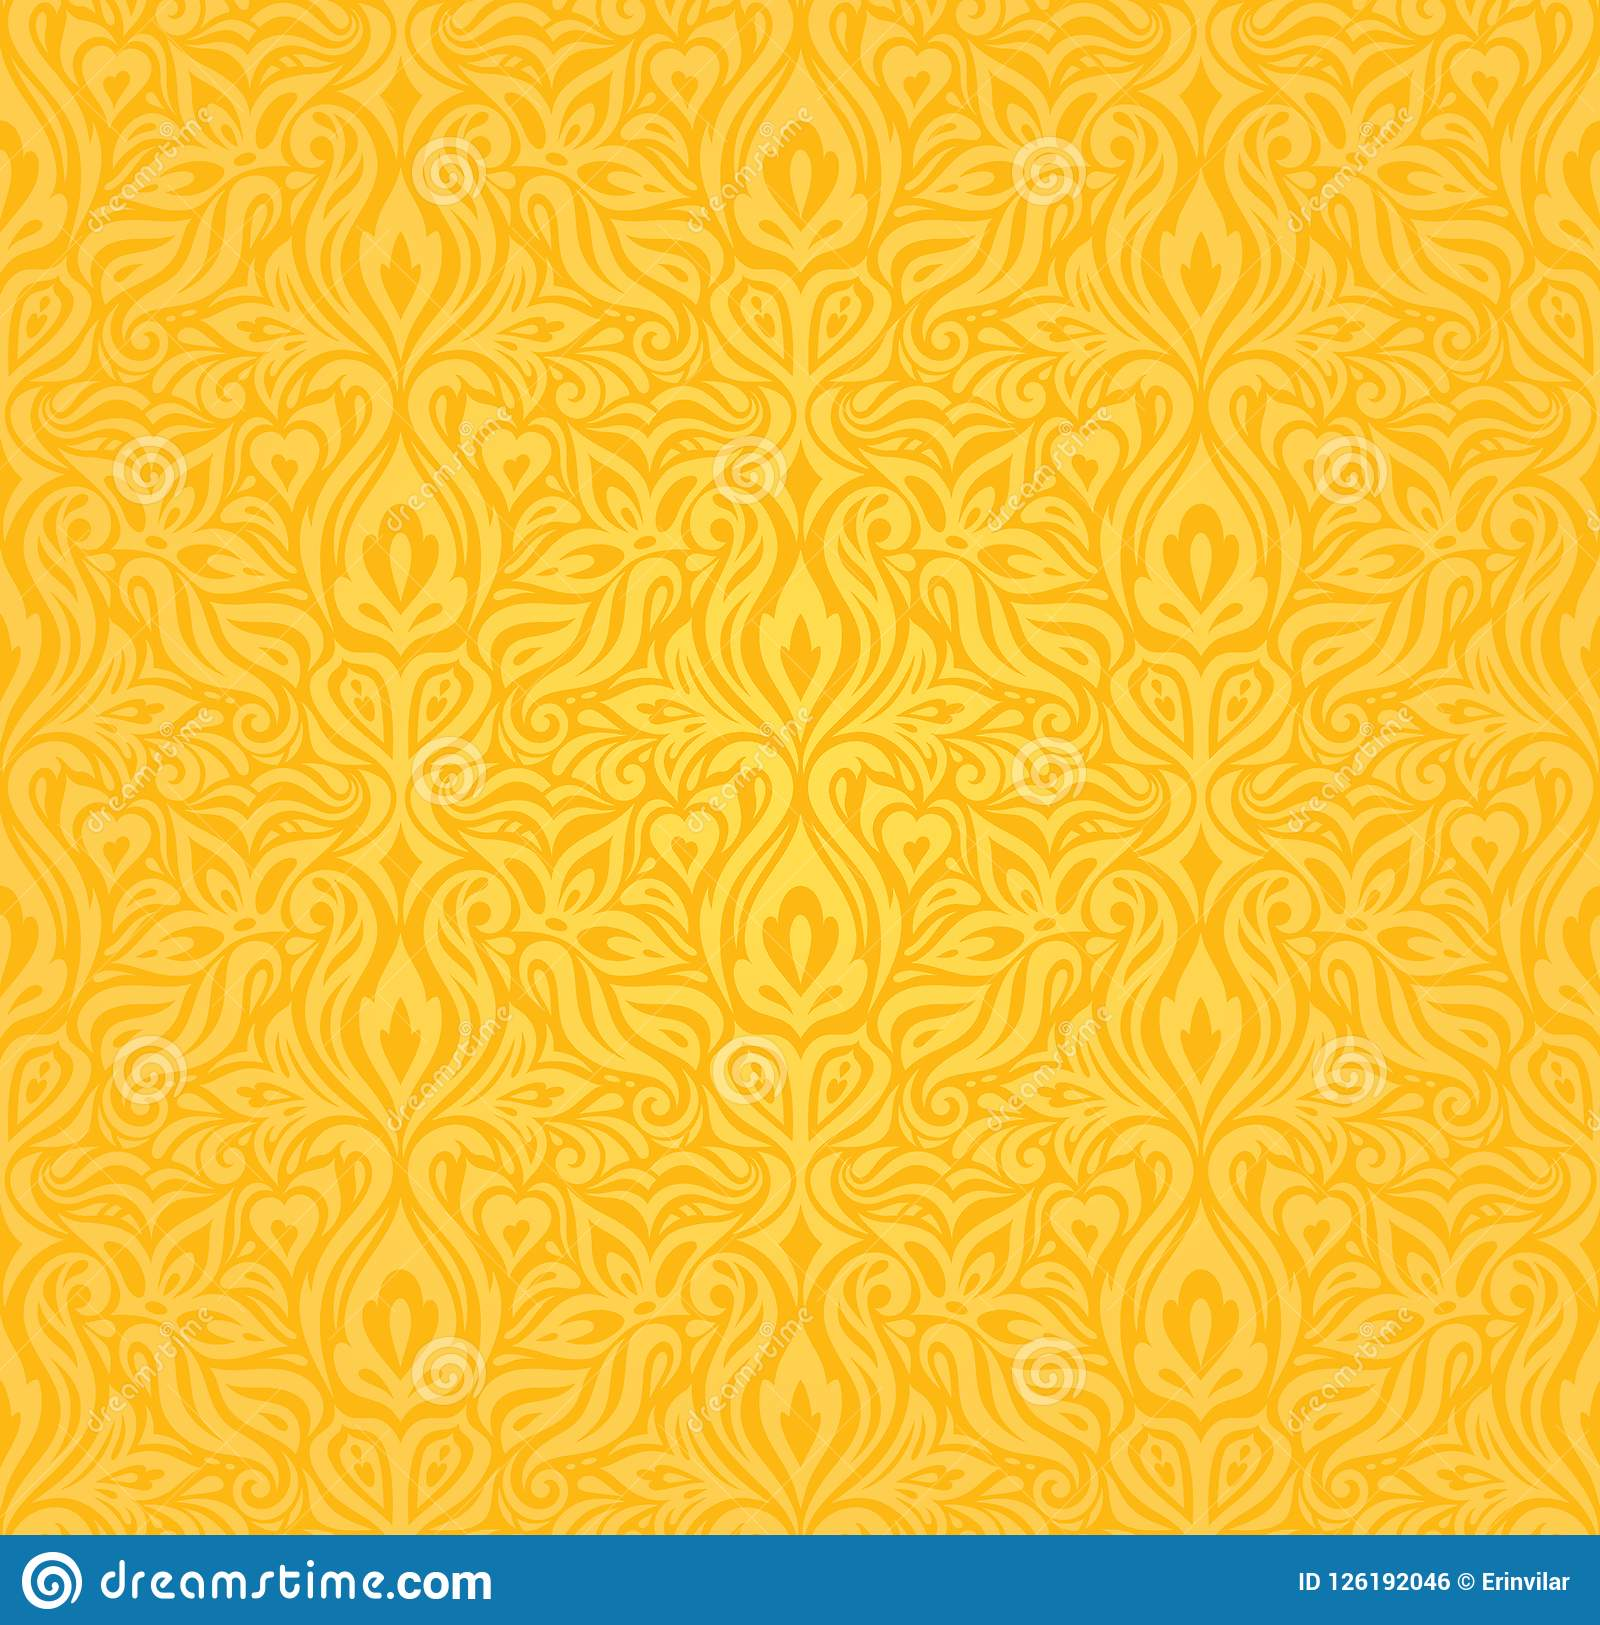 Yellow Colorful Floral Wallpaper Background Floral Pattern Stock